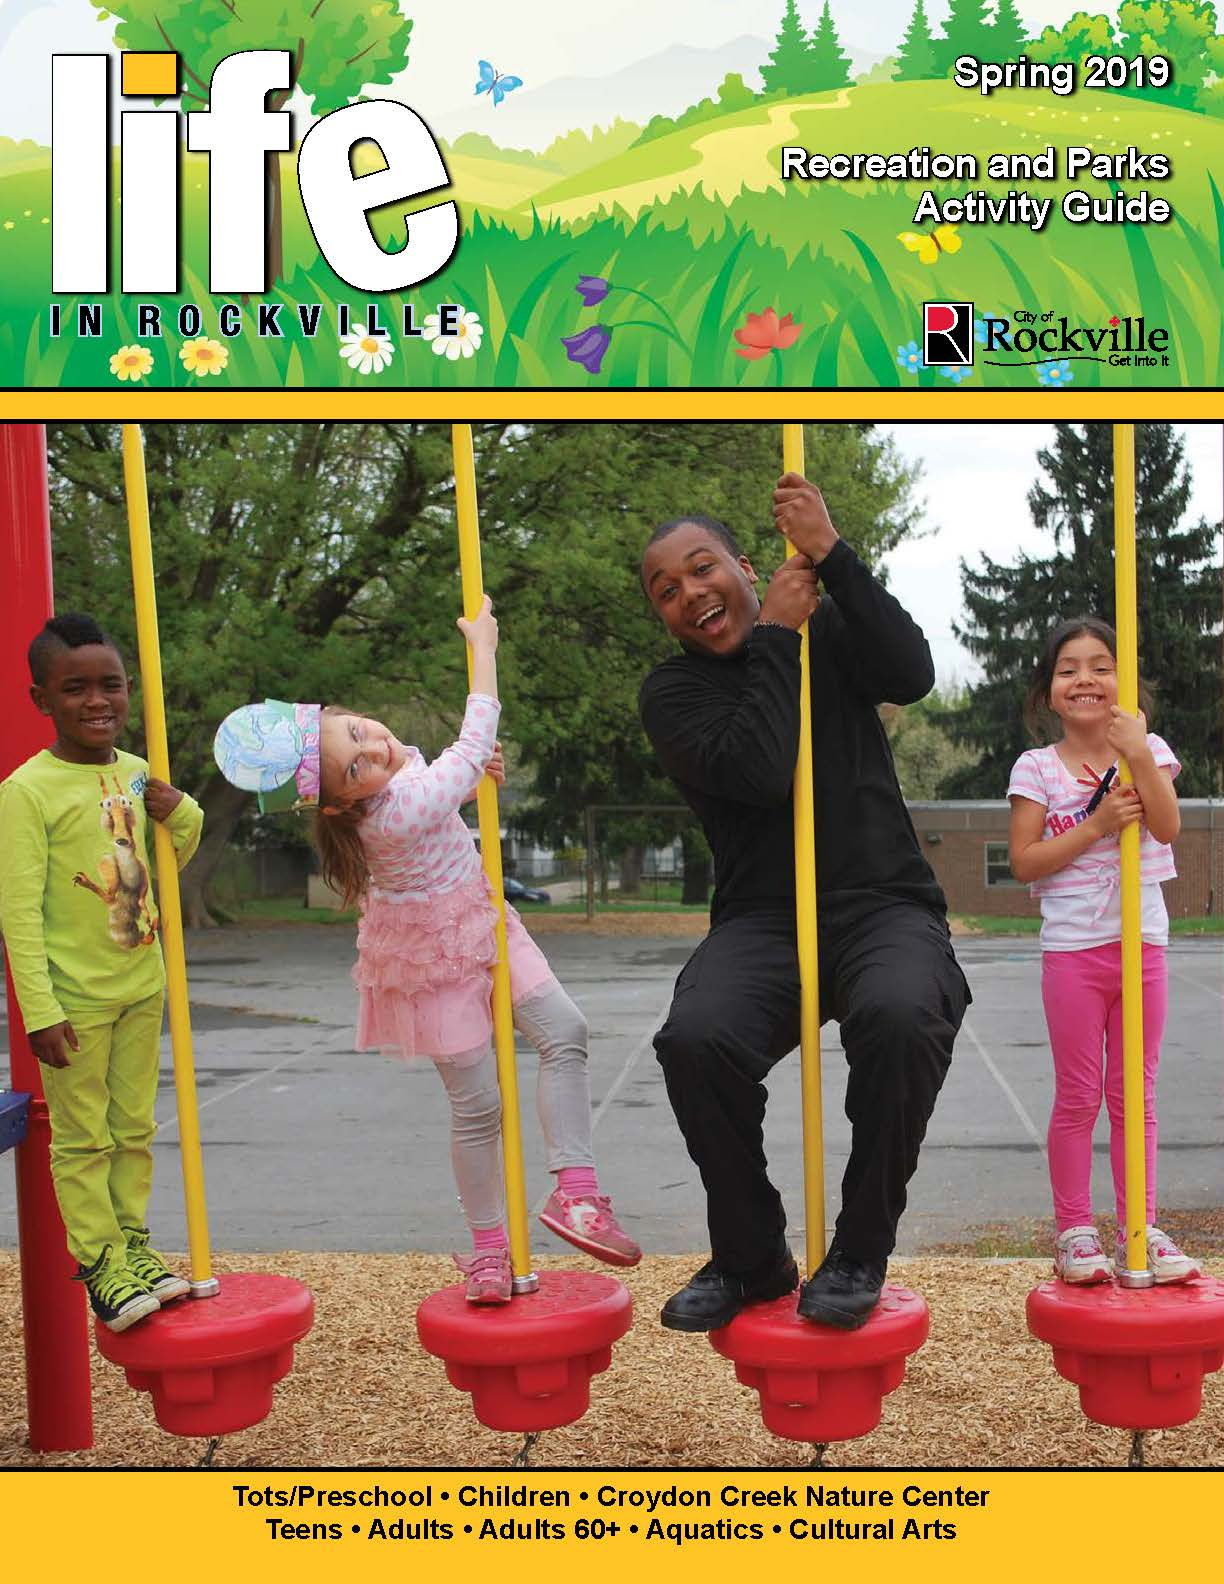 Spring 2019 Life in Rockville Recreation guide cover